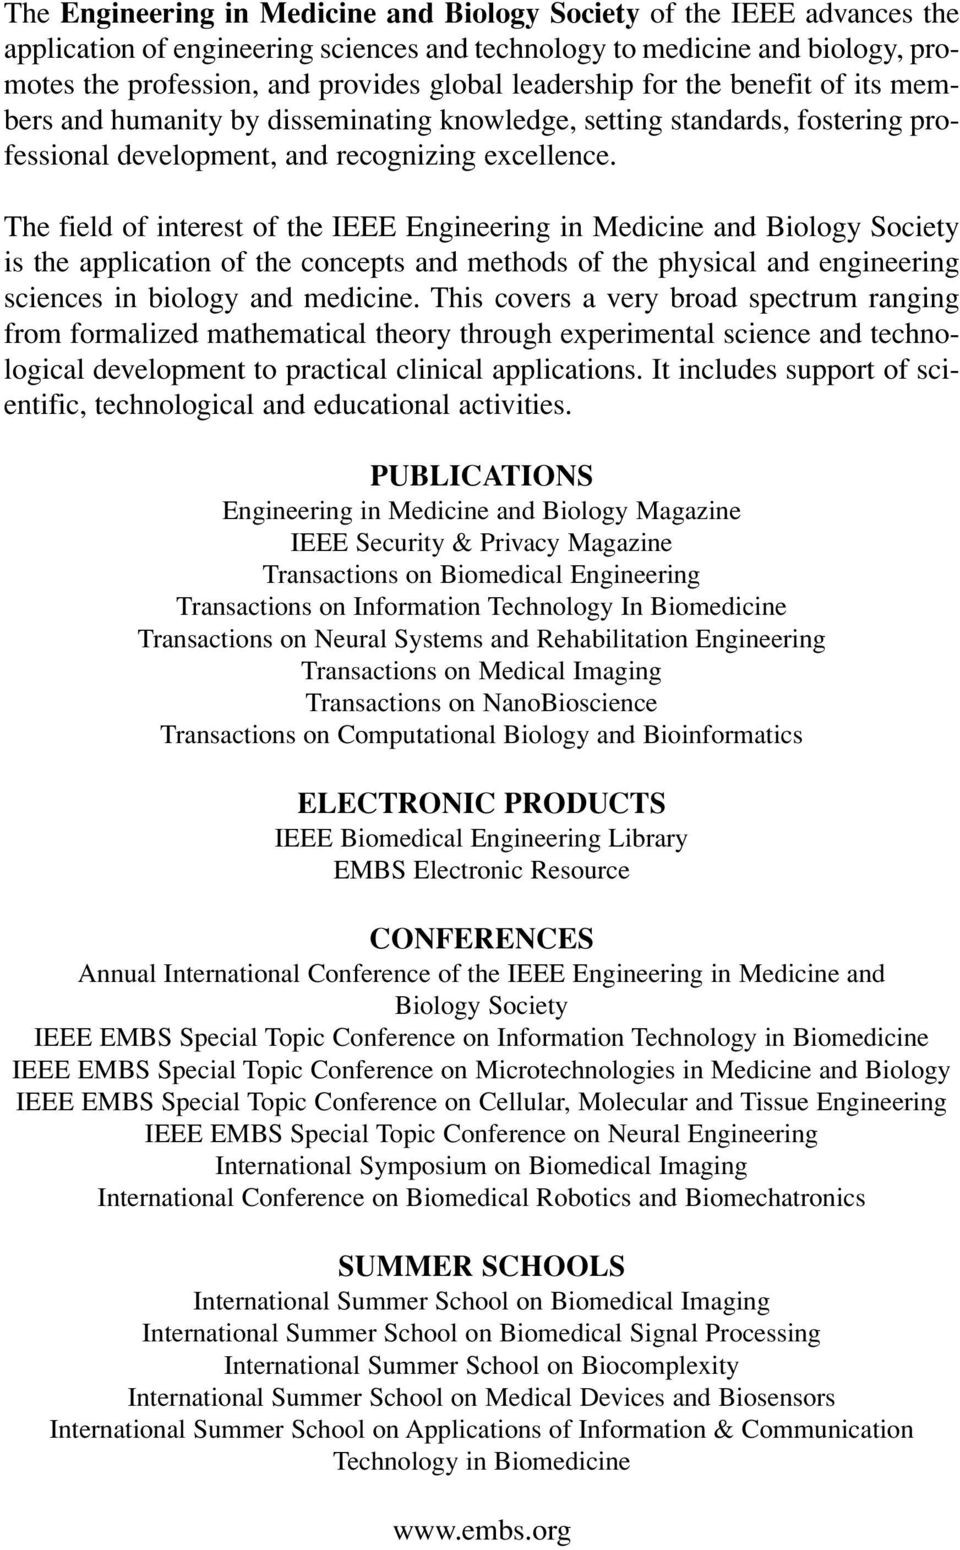 The field of interest of the IEEE Engineering in Medicine and Biology Society is the application of the concepts and methods of the physical and engineering sciences in biology and medicine.